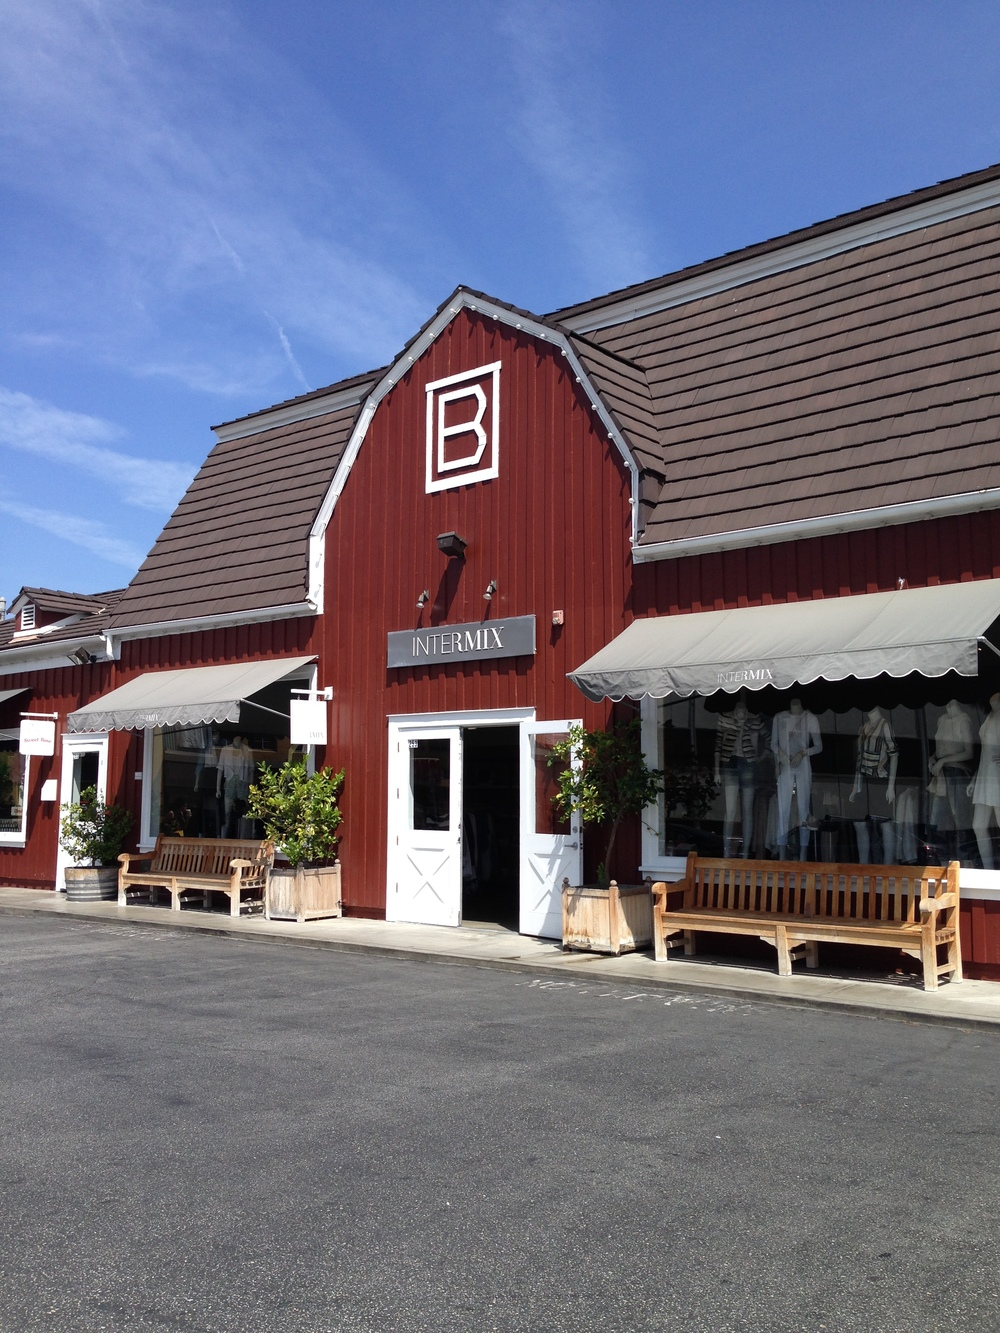 The entrance to the Brentwood Country Mart, a red and white retail barn space that has been in existence since the late 1940's. Filled with a rotation of the best small boutiques, from Calypso to Turpan Home, the homey feel of the space is evident in its steeped-in-charm facade